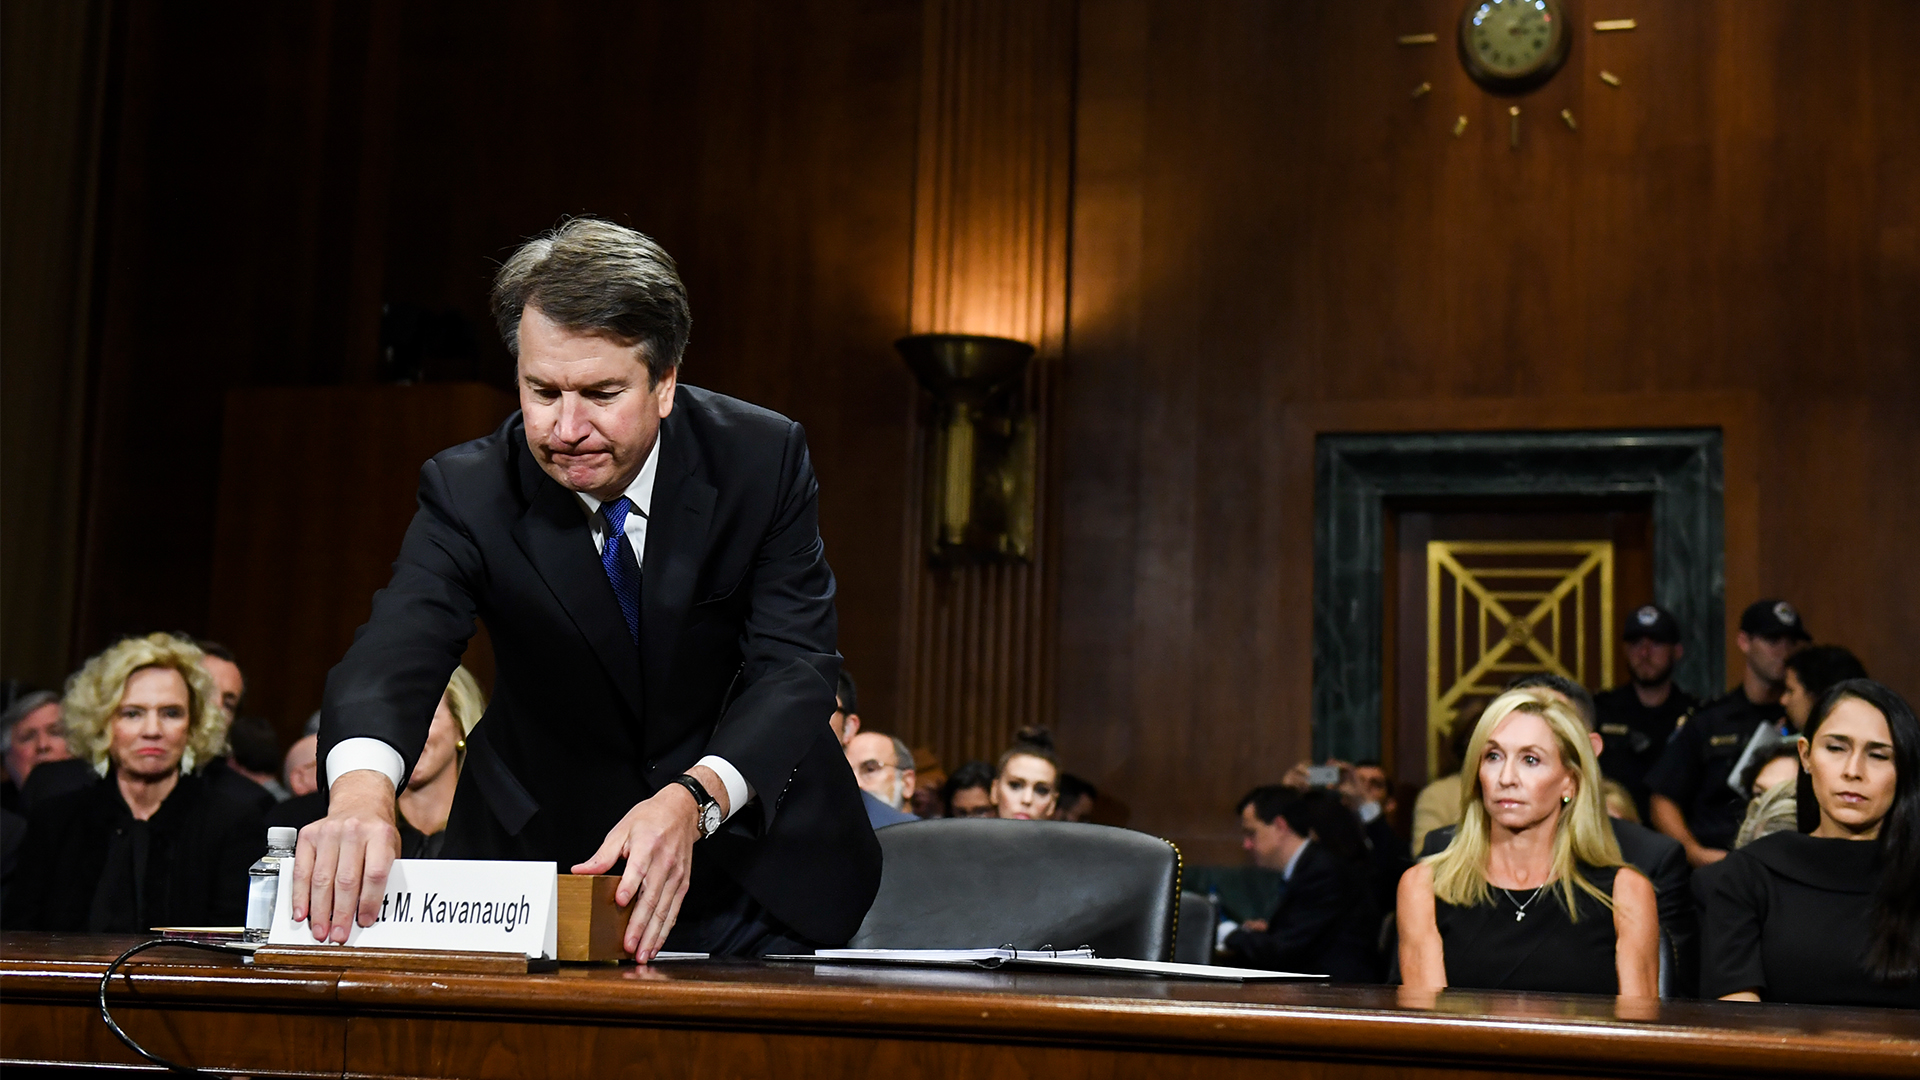 Fight over Kavanaugh intensifies amid confusion over limits of FBI sexual assault investigation